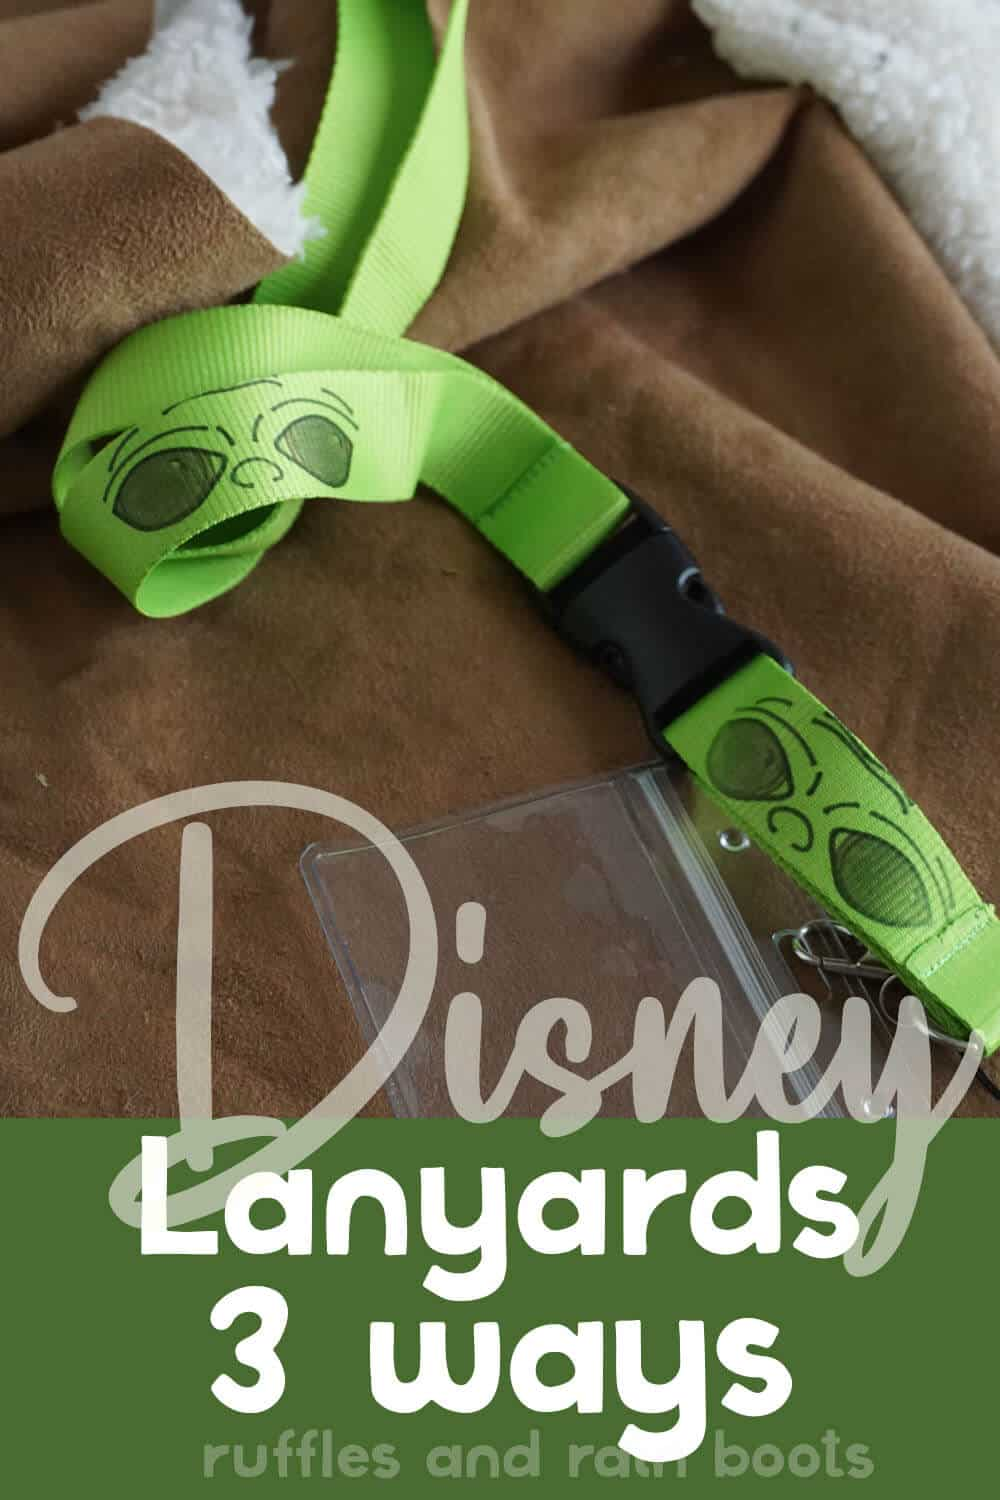 disney cruise fish extender gift idea of a baby yoda lanyard with text which reads disney lanyards 3 ways